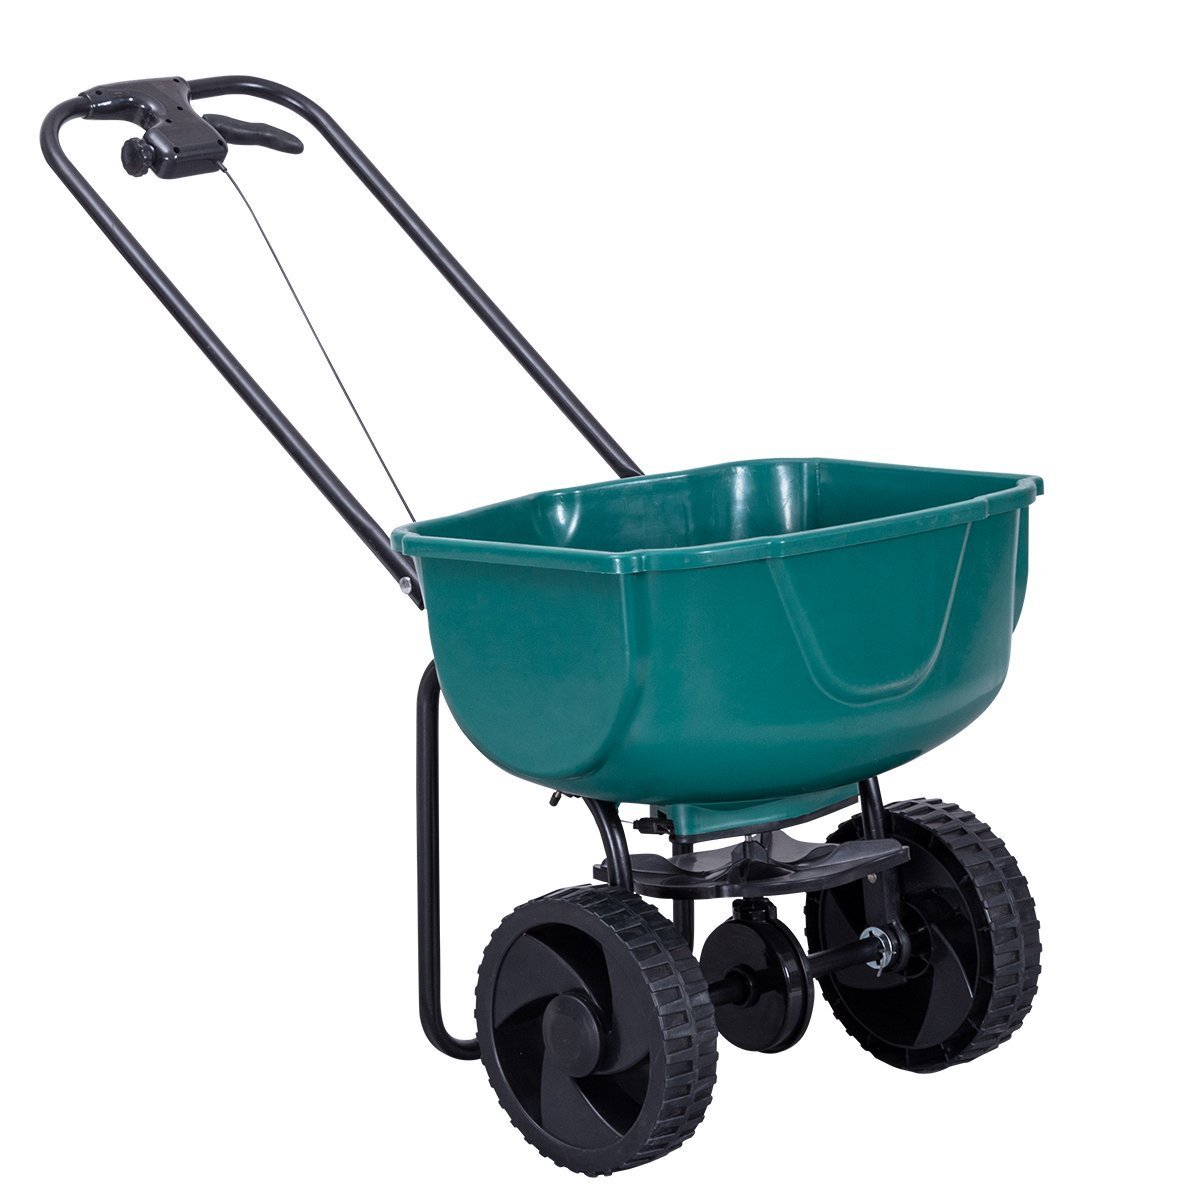 Goplus Broadcast Spreader 44Lbs Lawn Garden Seeder Walk-Behind Grass Fertilizer (Green)